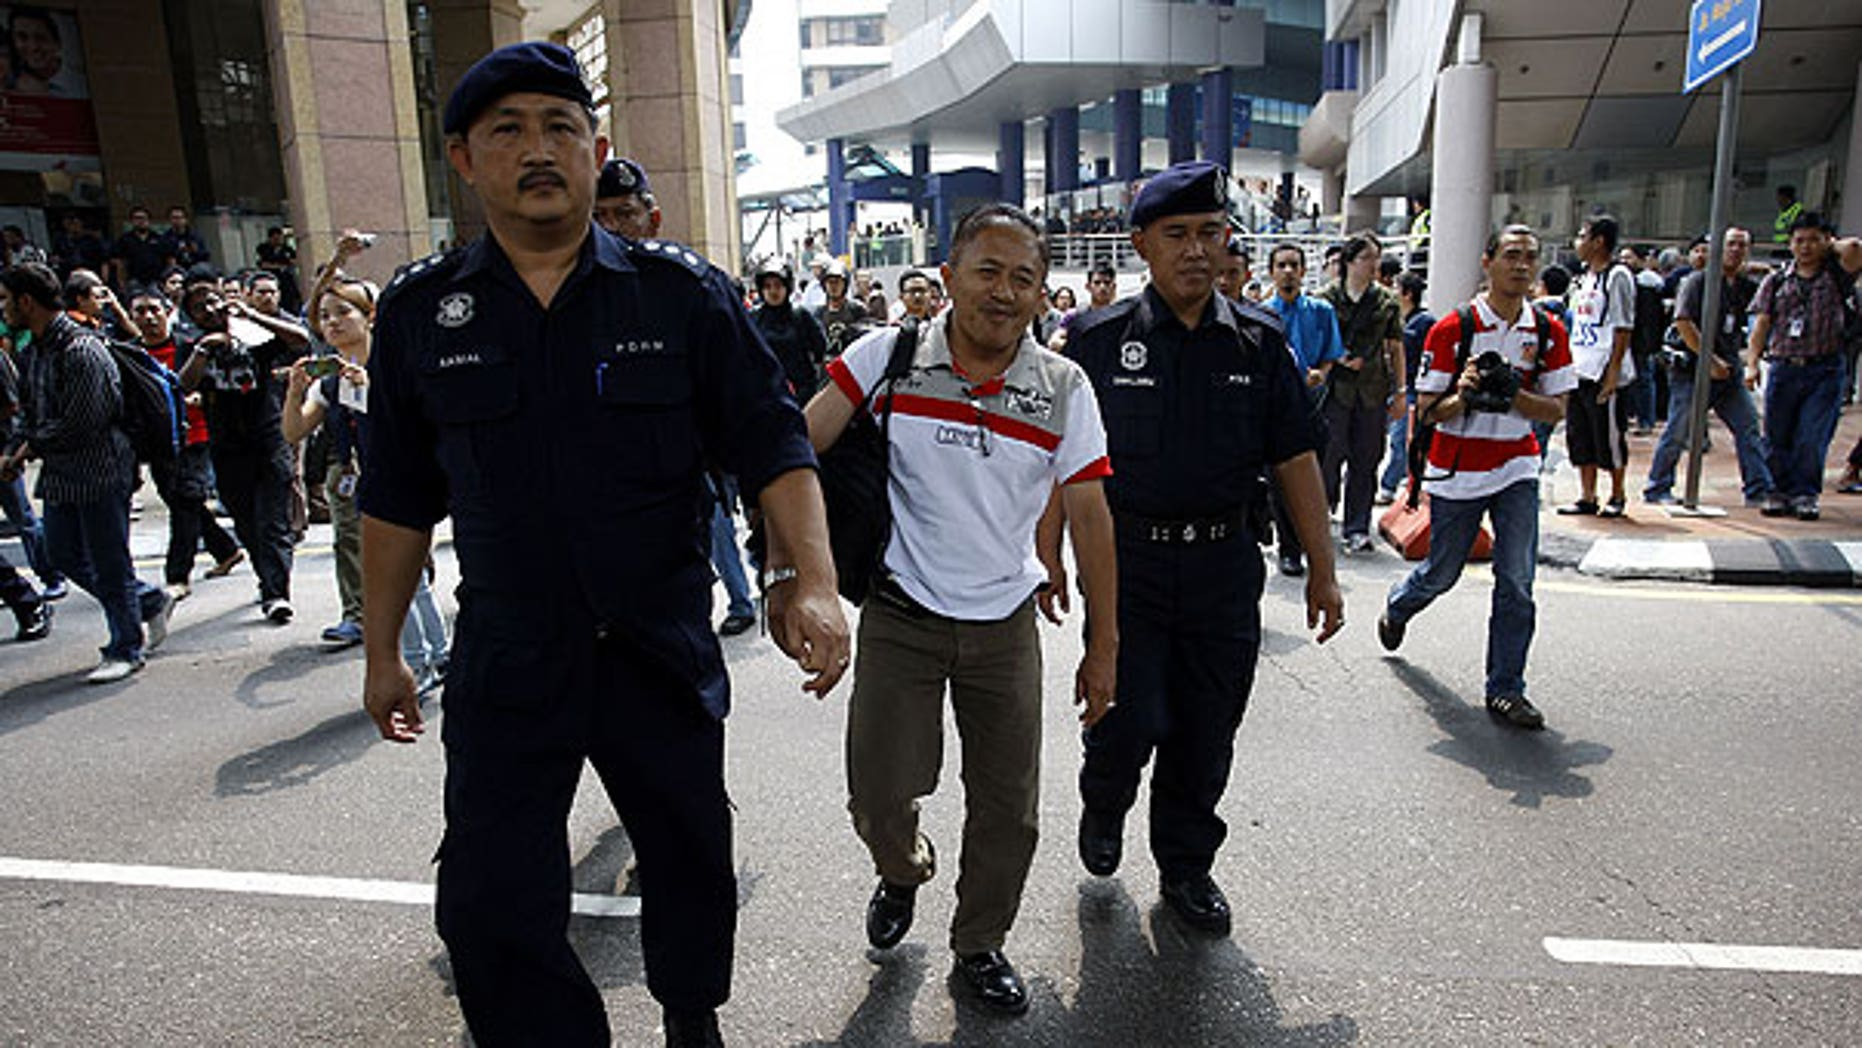 July 9: Malaysian police officers detain a man near Independence Square in Kuala Lumpur, Malaysia. Malaysian police said they have detained at least 644 people trying to assemble at a stadium for a banned rally seeking electoral reforms.